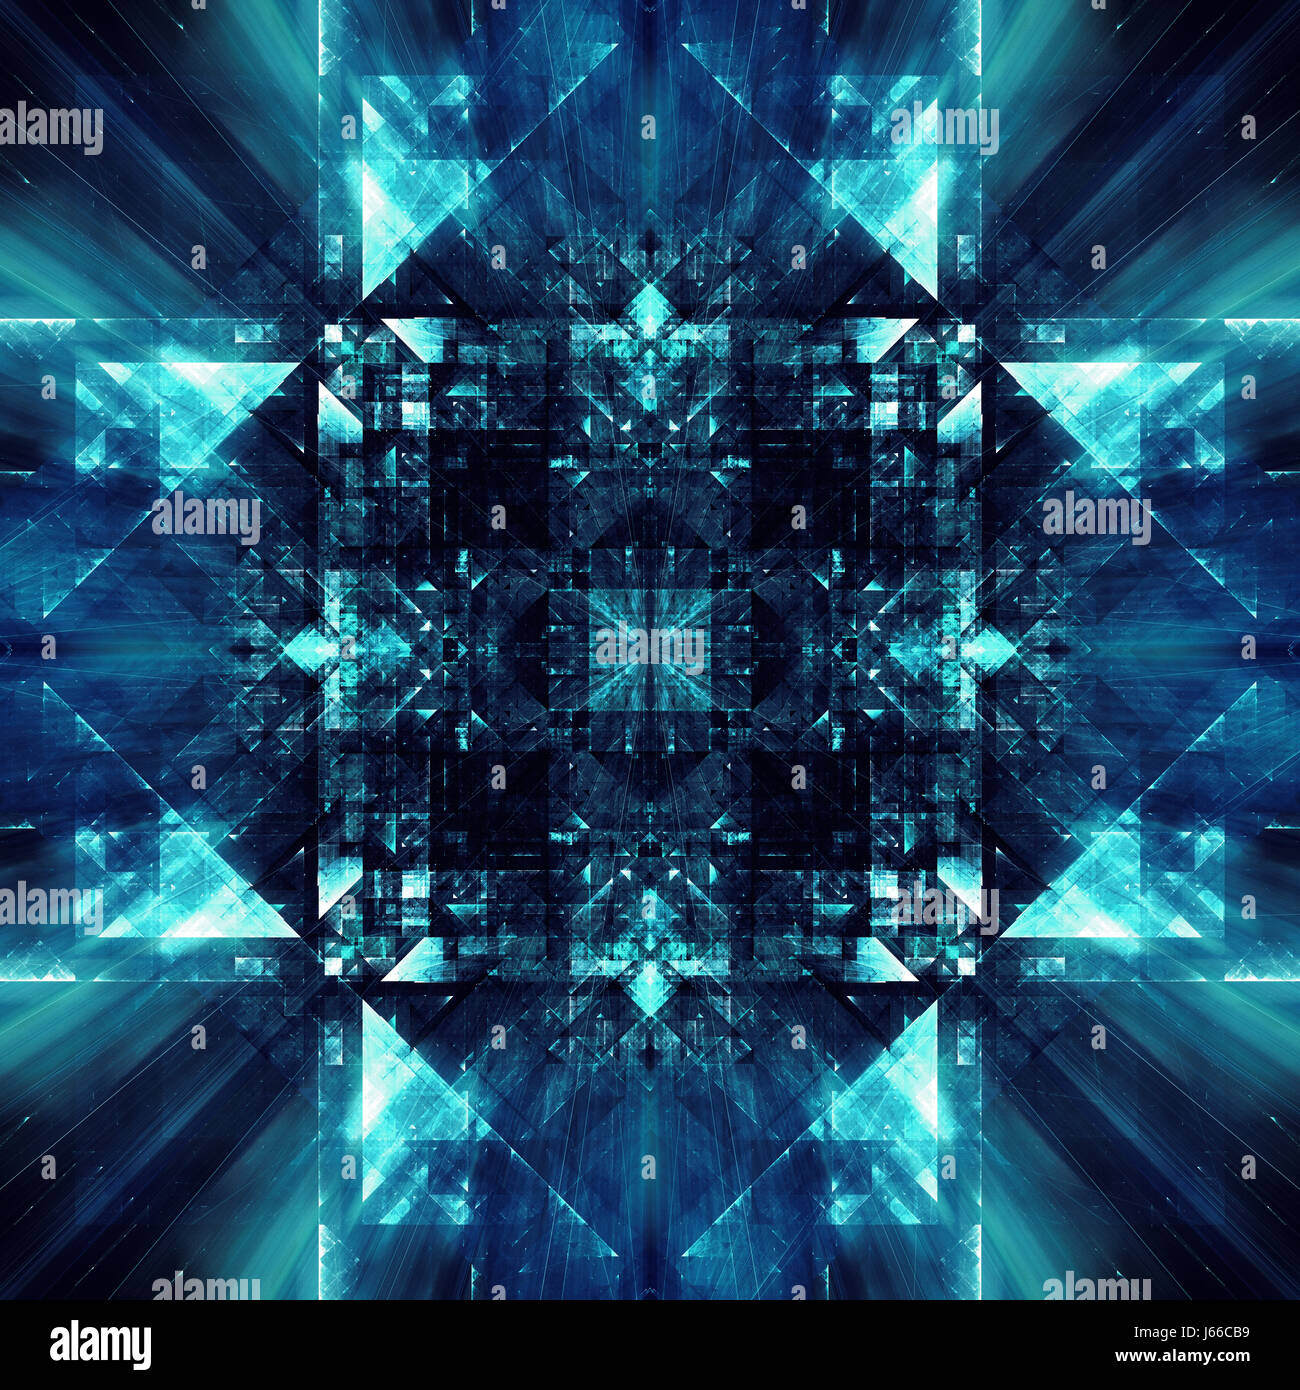 Abstract digital fractal concept based around digital data - Stock Image